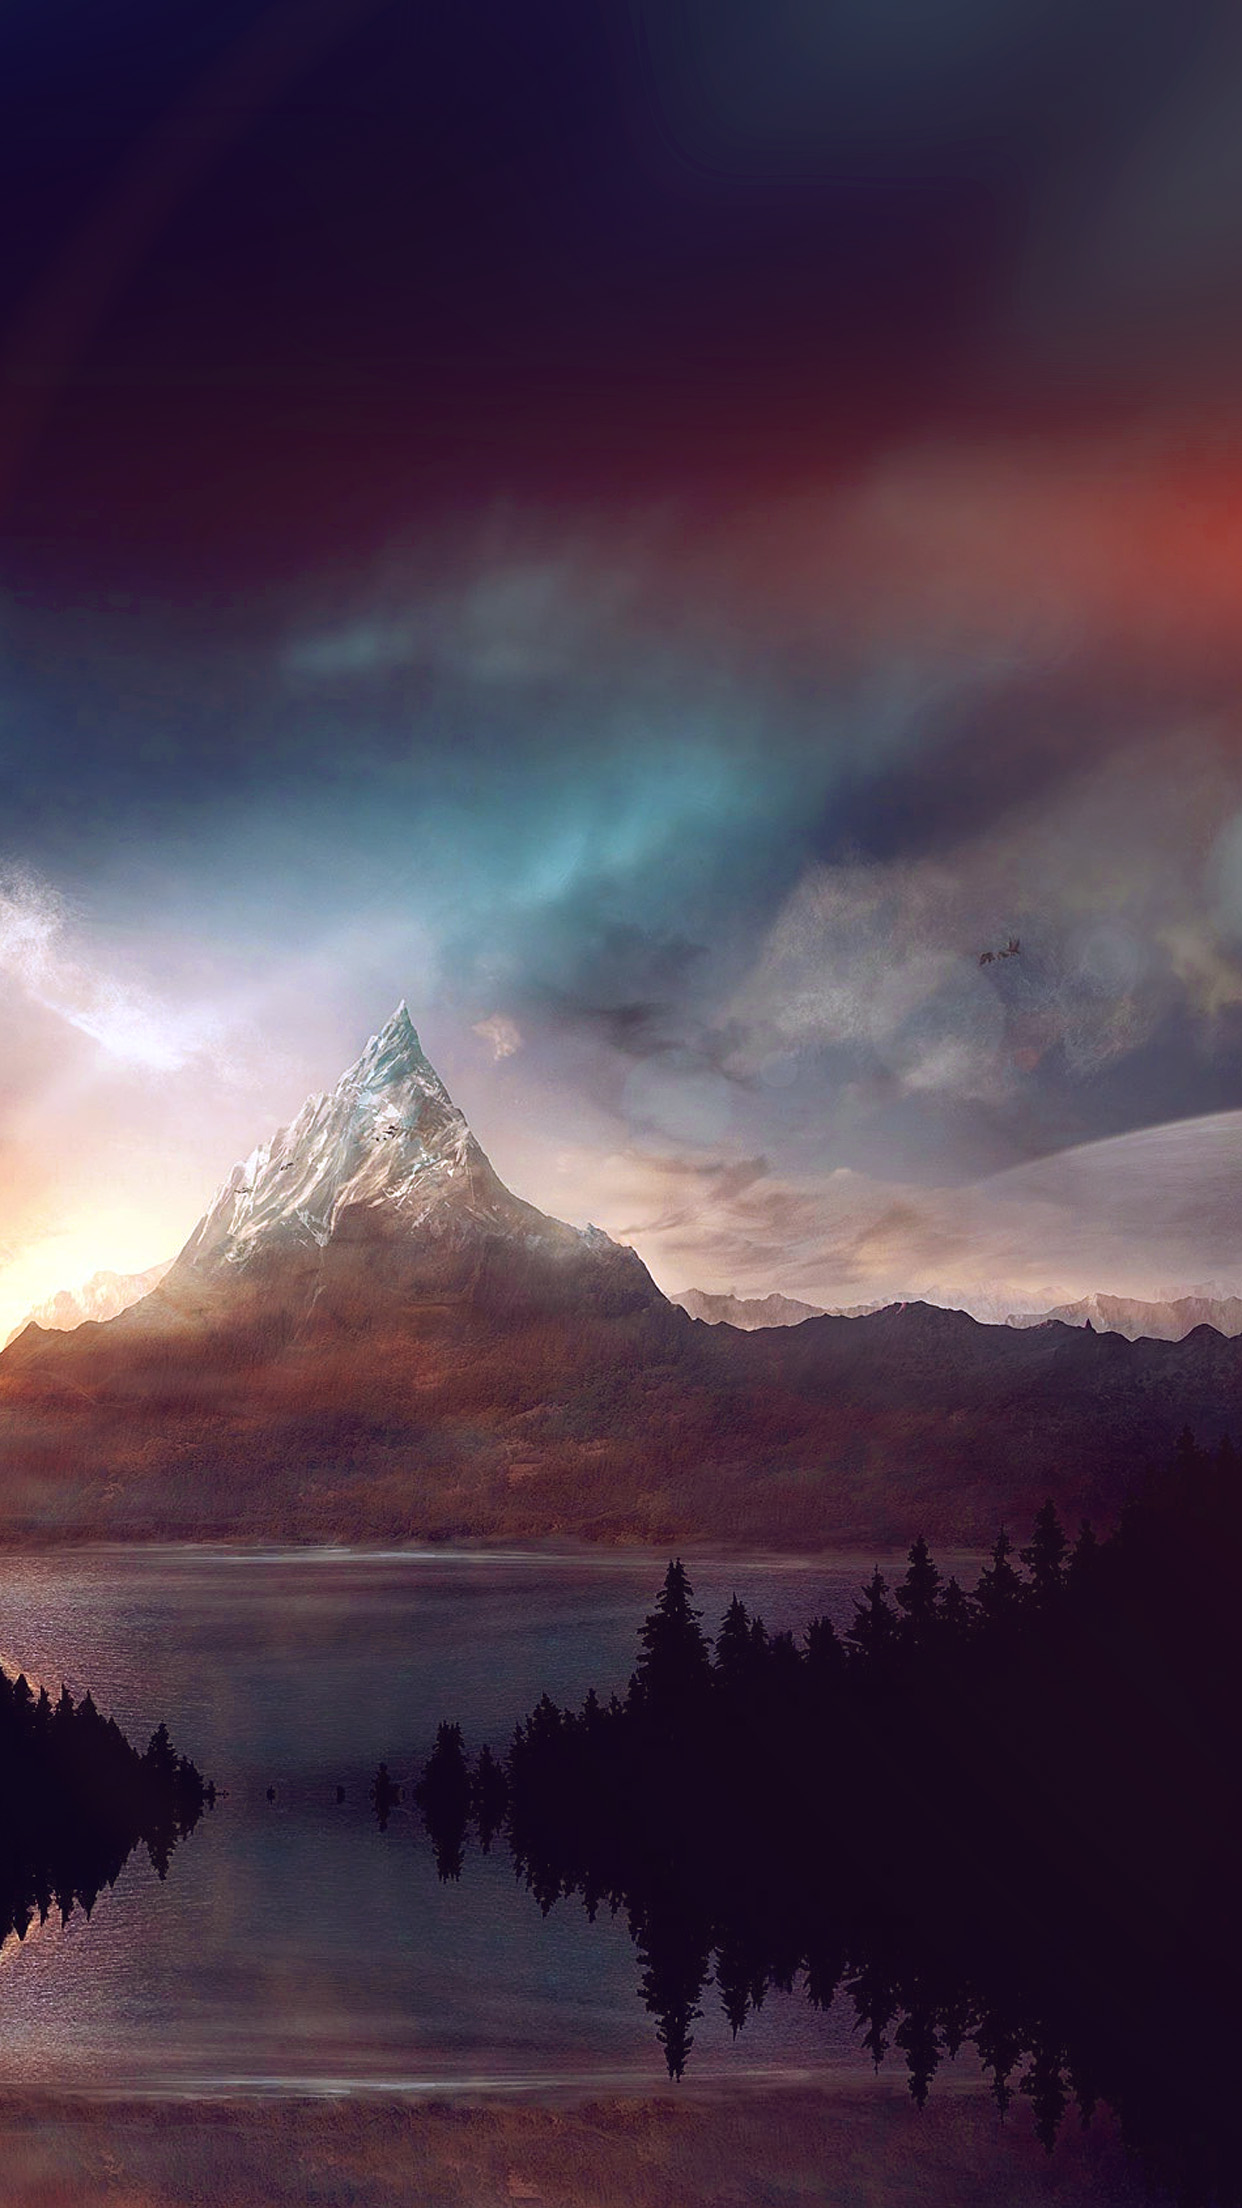 mountain nature fantasy art illustration flare android wallpaper android hd wallpapers